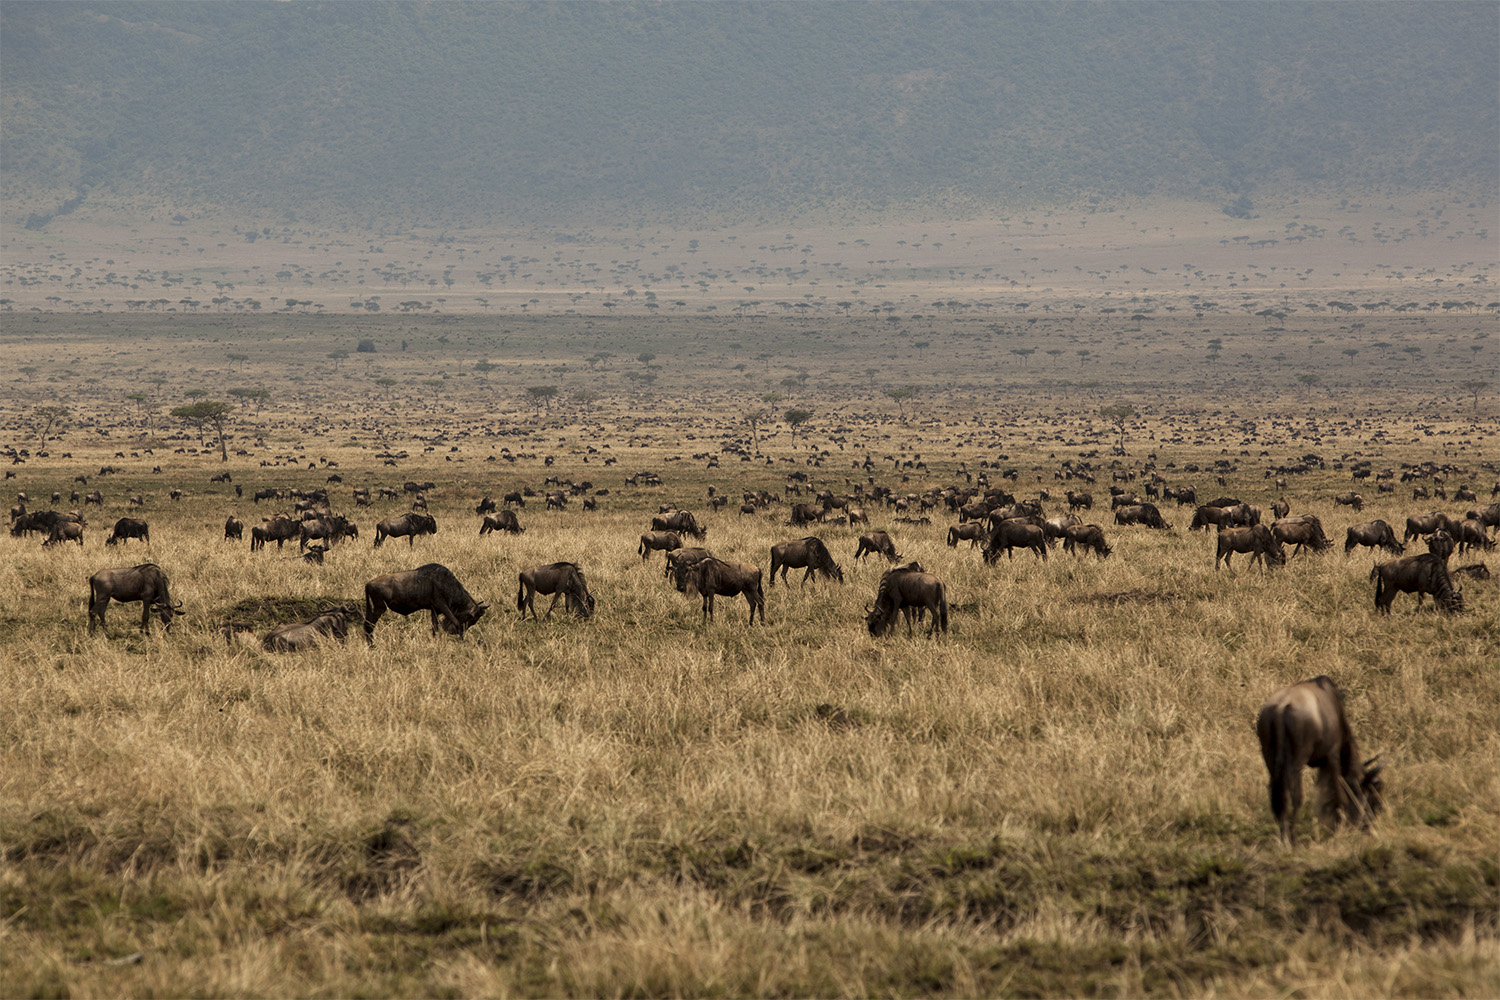 Wildebeest herd on burnt grass